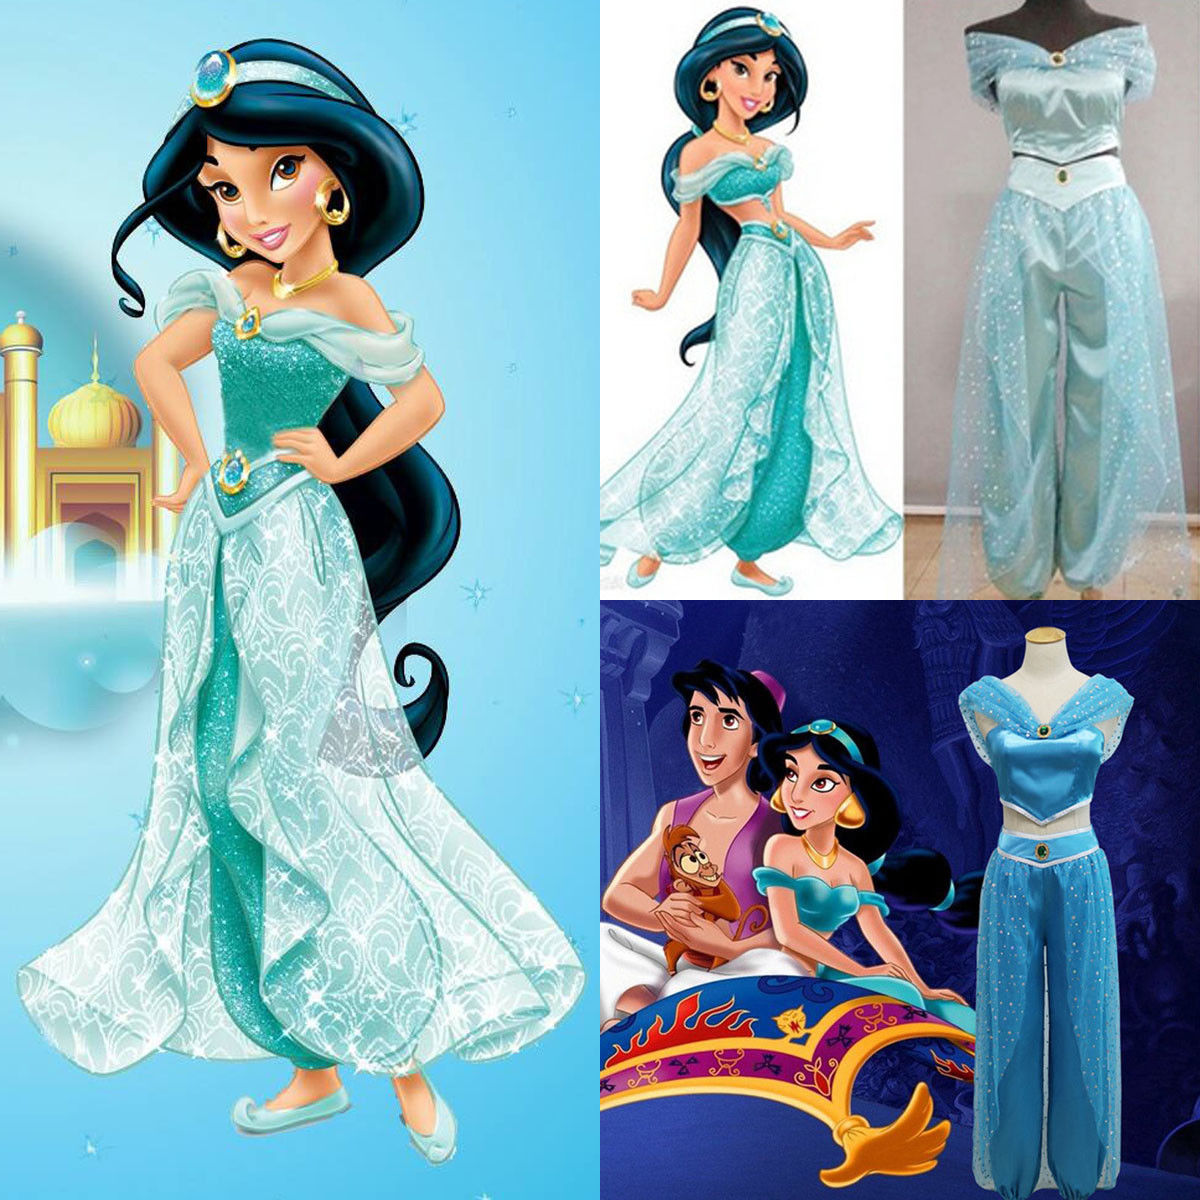 Anime Aladdin Jasmine Princess Cosplay Women Girl Fancy Dress Up Party Costume Sets Frozen Cosplay Costumes Sets girl